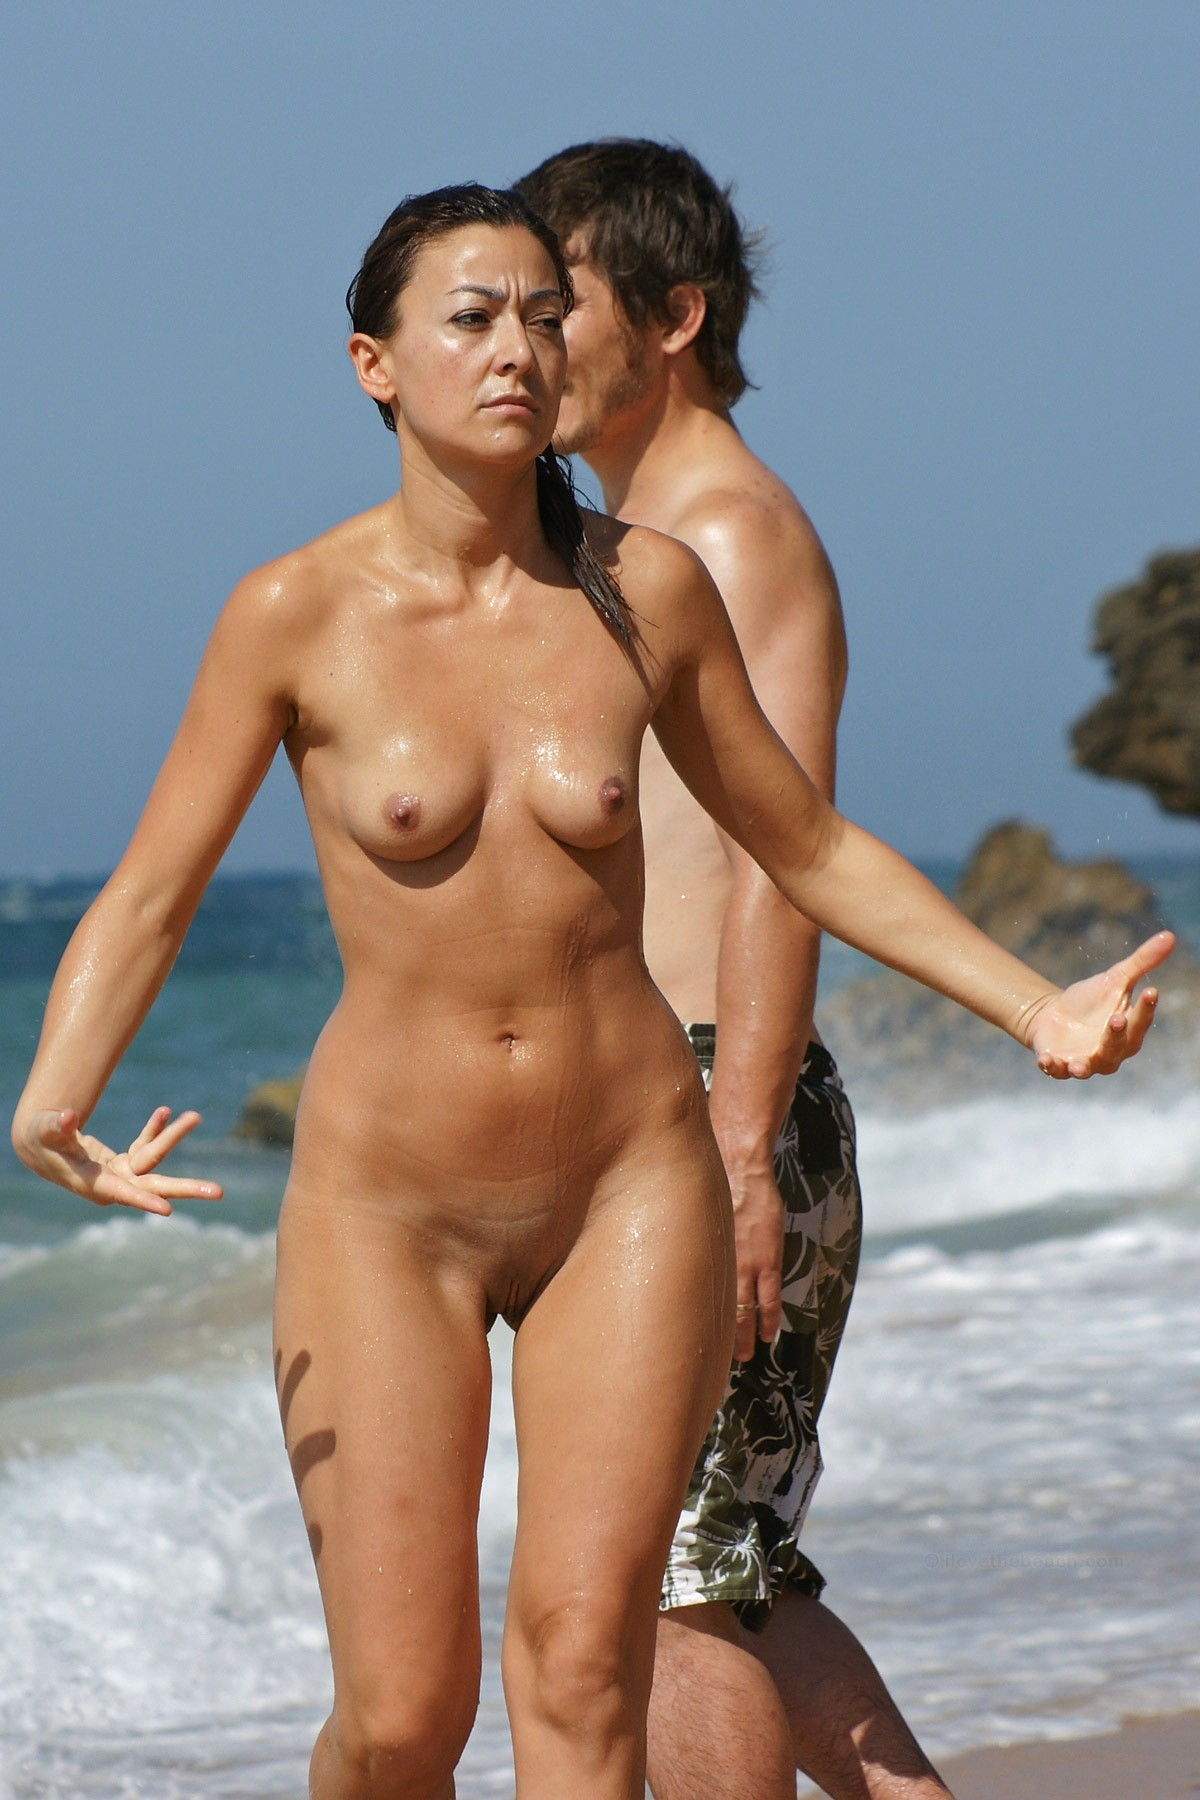 Pictures of nude women on the beach